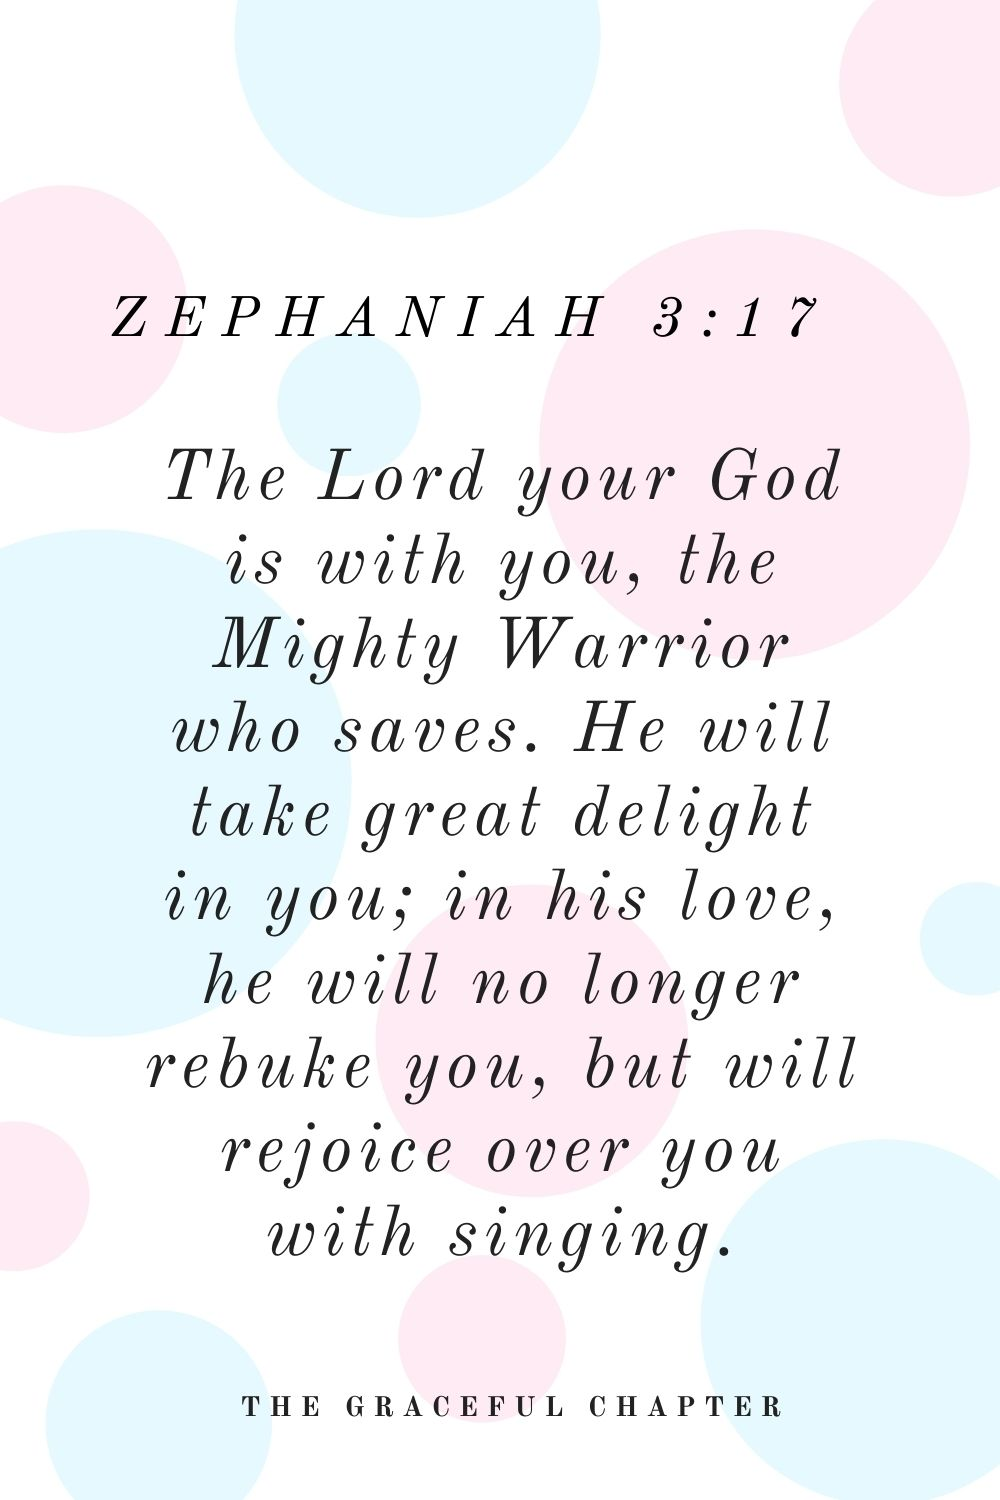 The Lord your God is with you, the Mighty Warrior who saves. He will take great delight in you; in his love, he will no longer rebuke you, but will rejoice over you with singing. Zephaniah 3:17